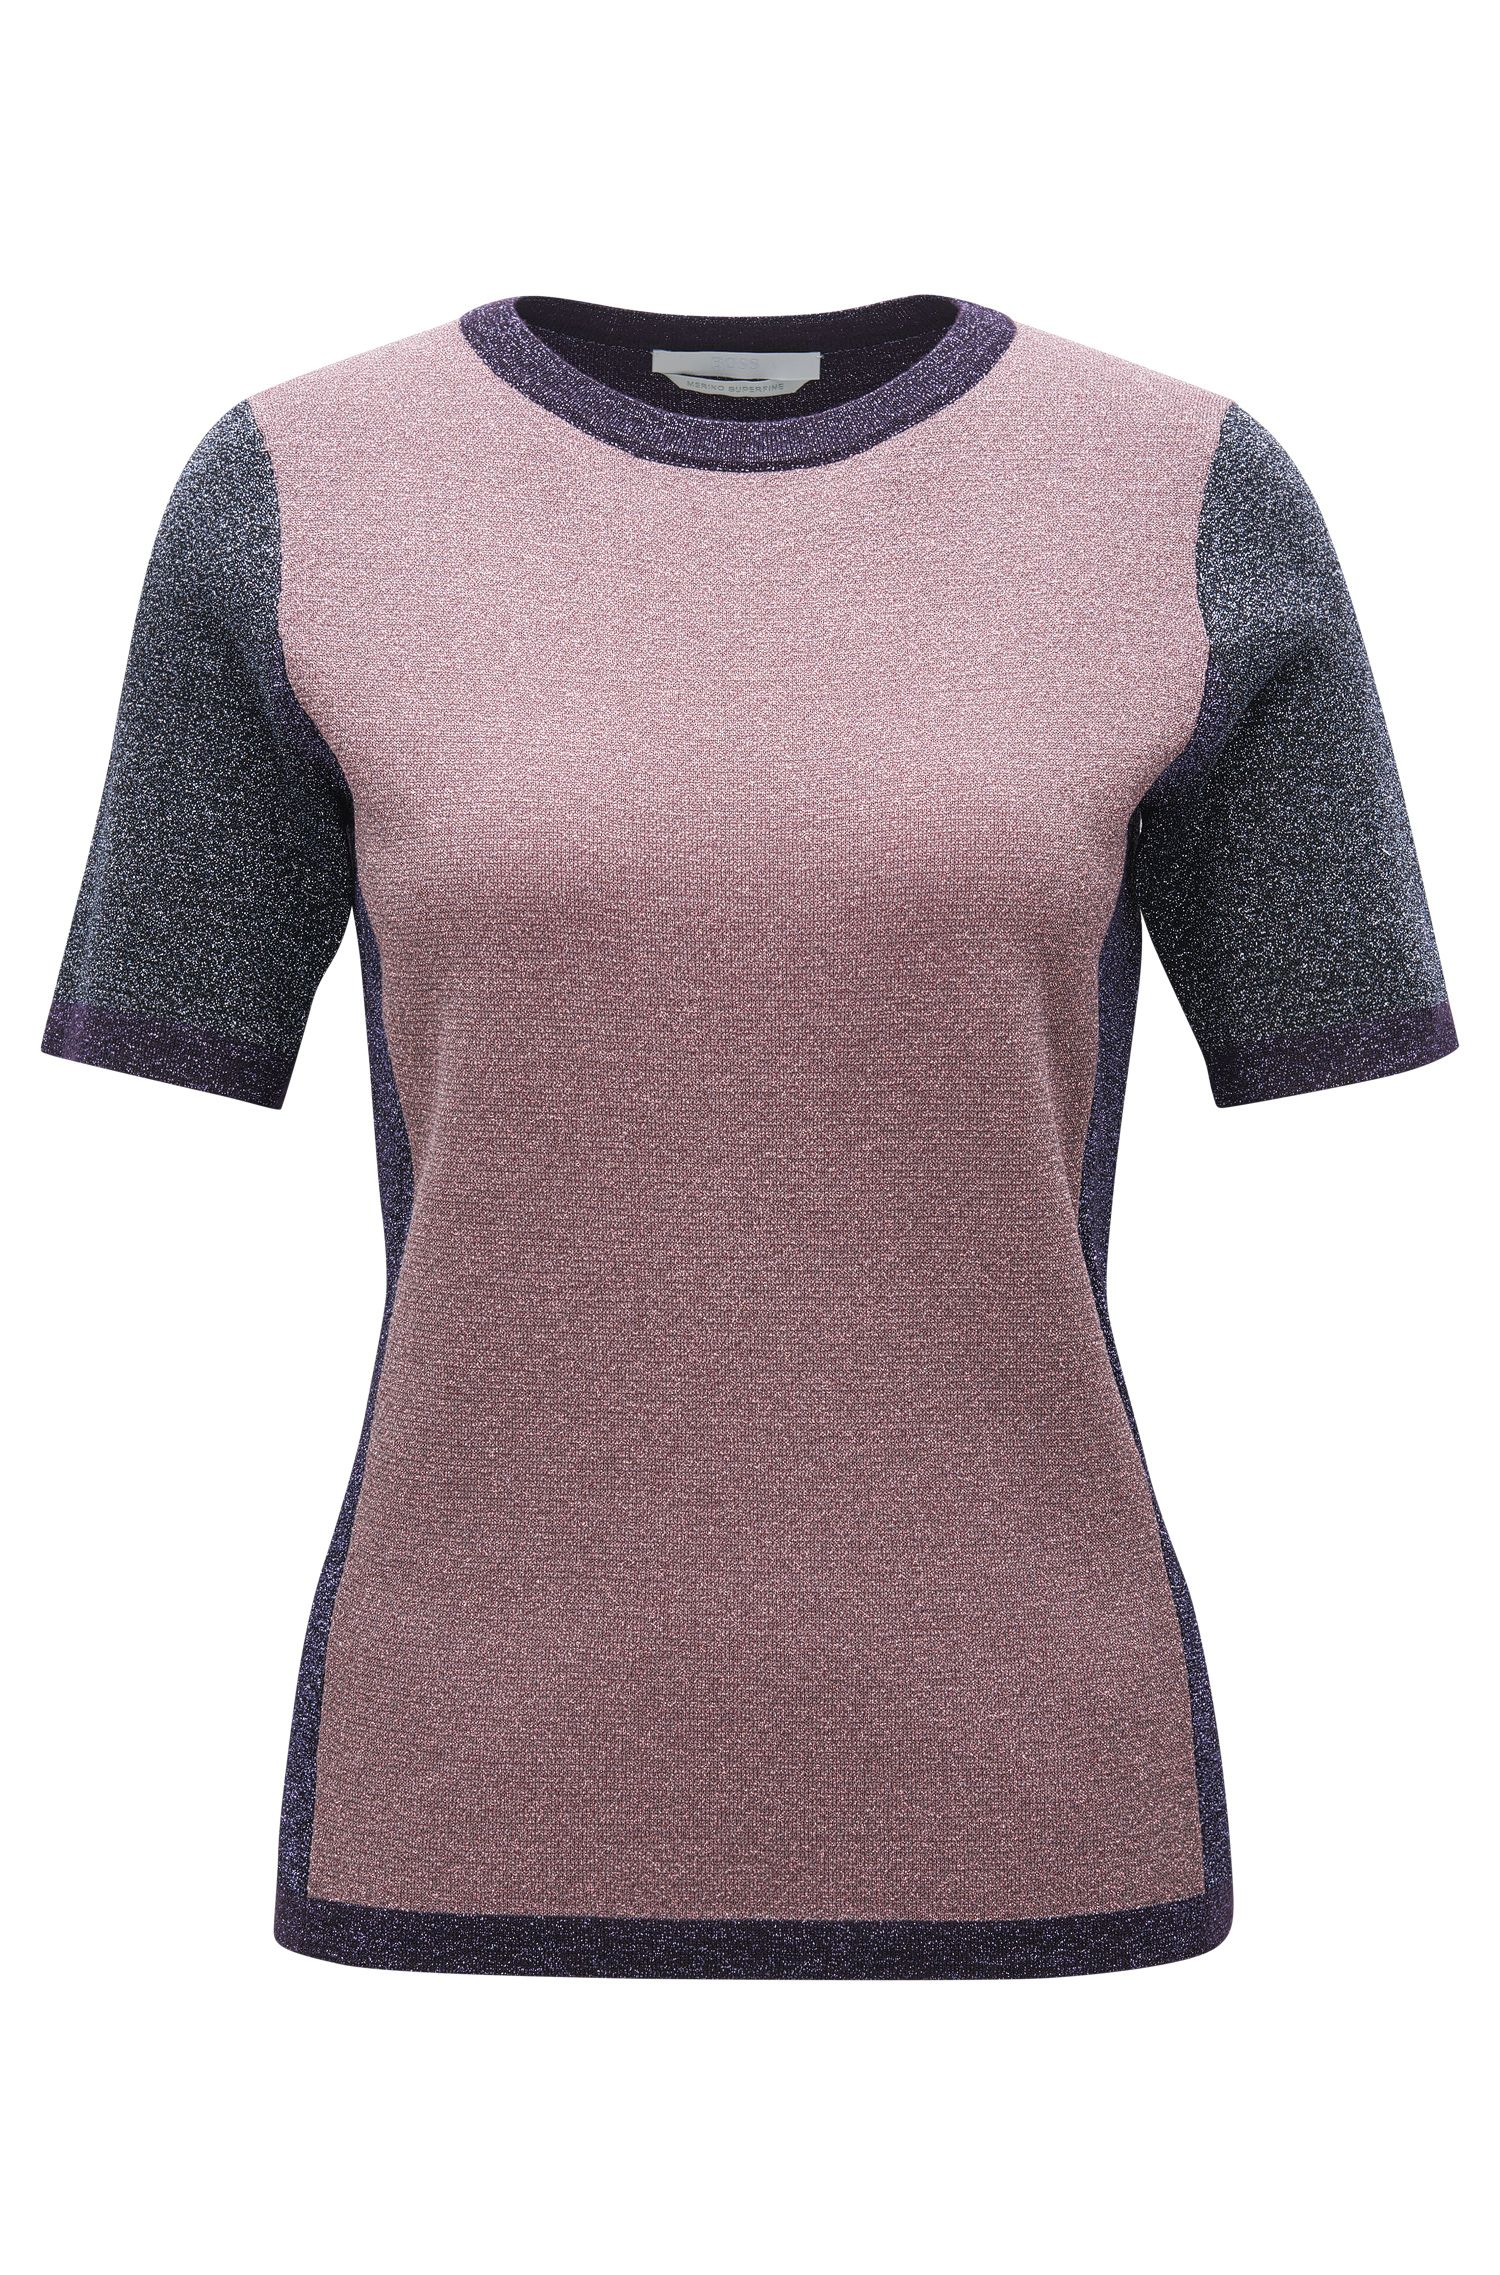 Colour Block Top aus Schurwoll-Mix mit Lurex